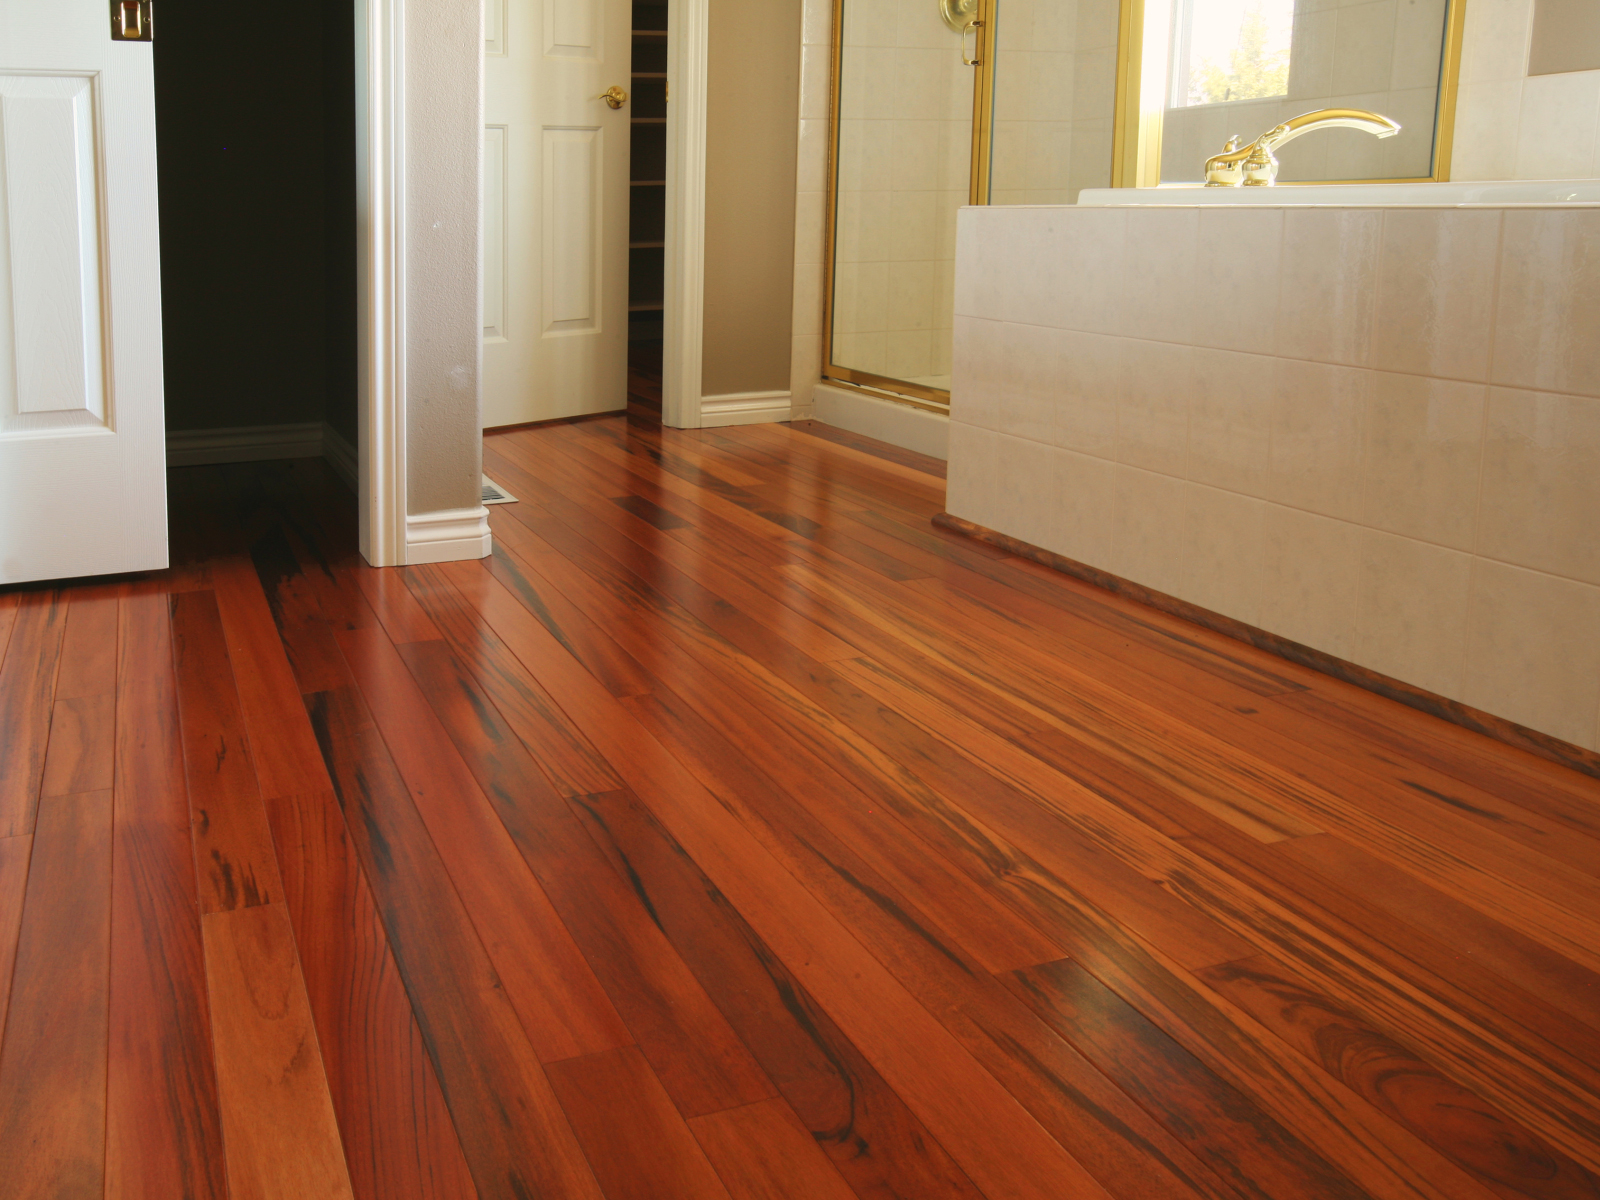 Bamboo flooring in bathroom homesfeed for Hardwood floors in bathroom